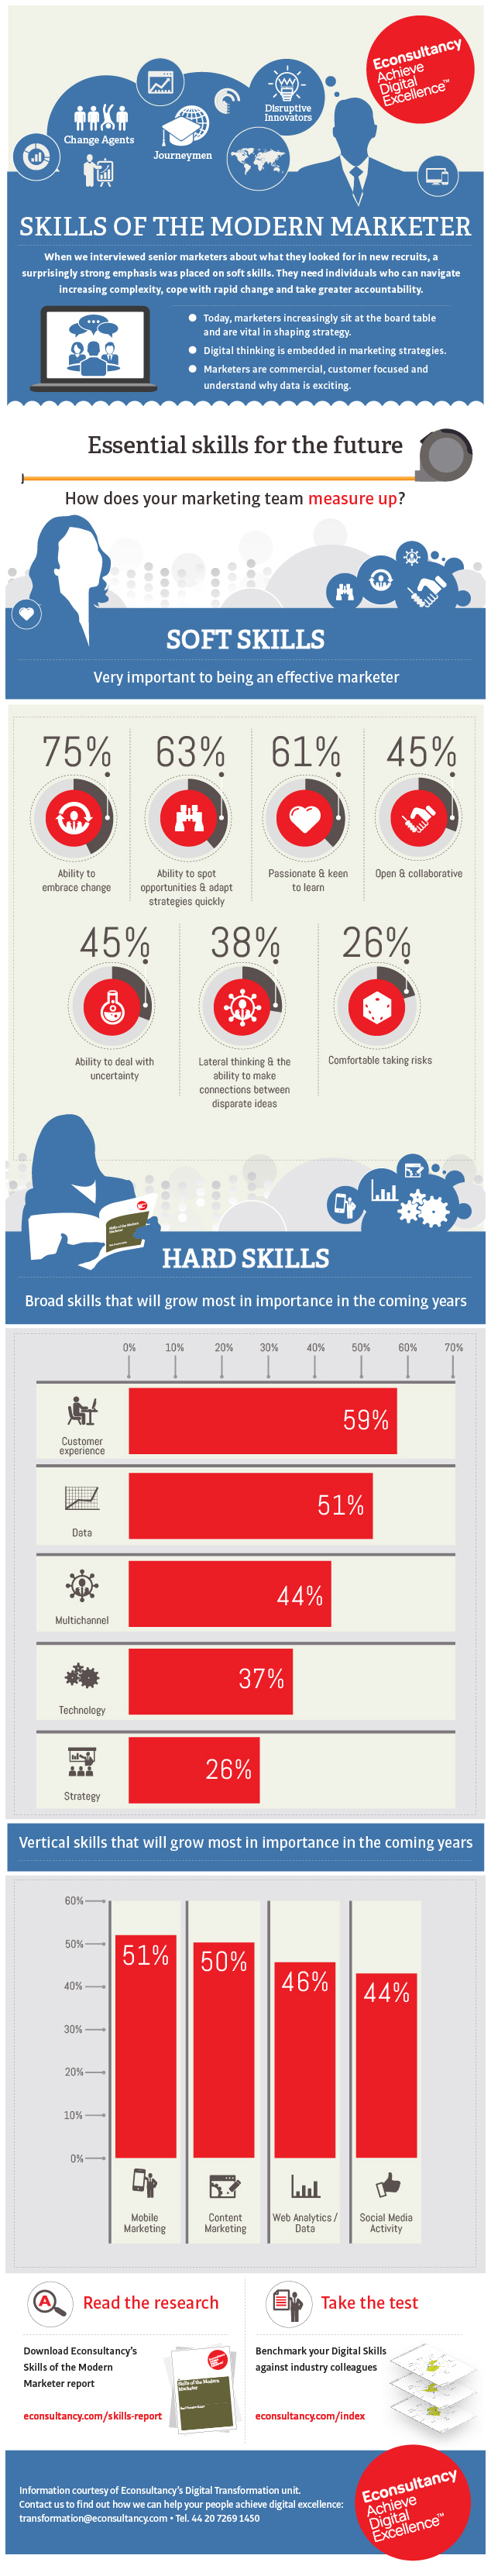 what are the essential skills for modern marketers infographic skills infographic